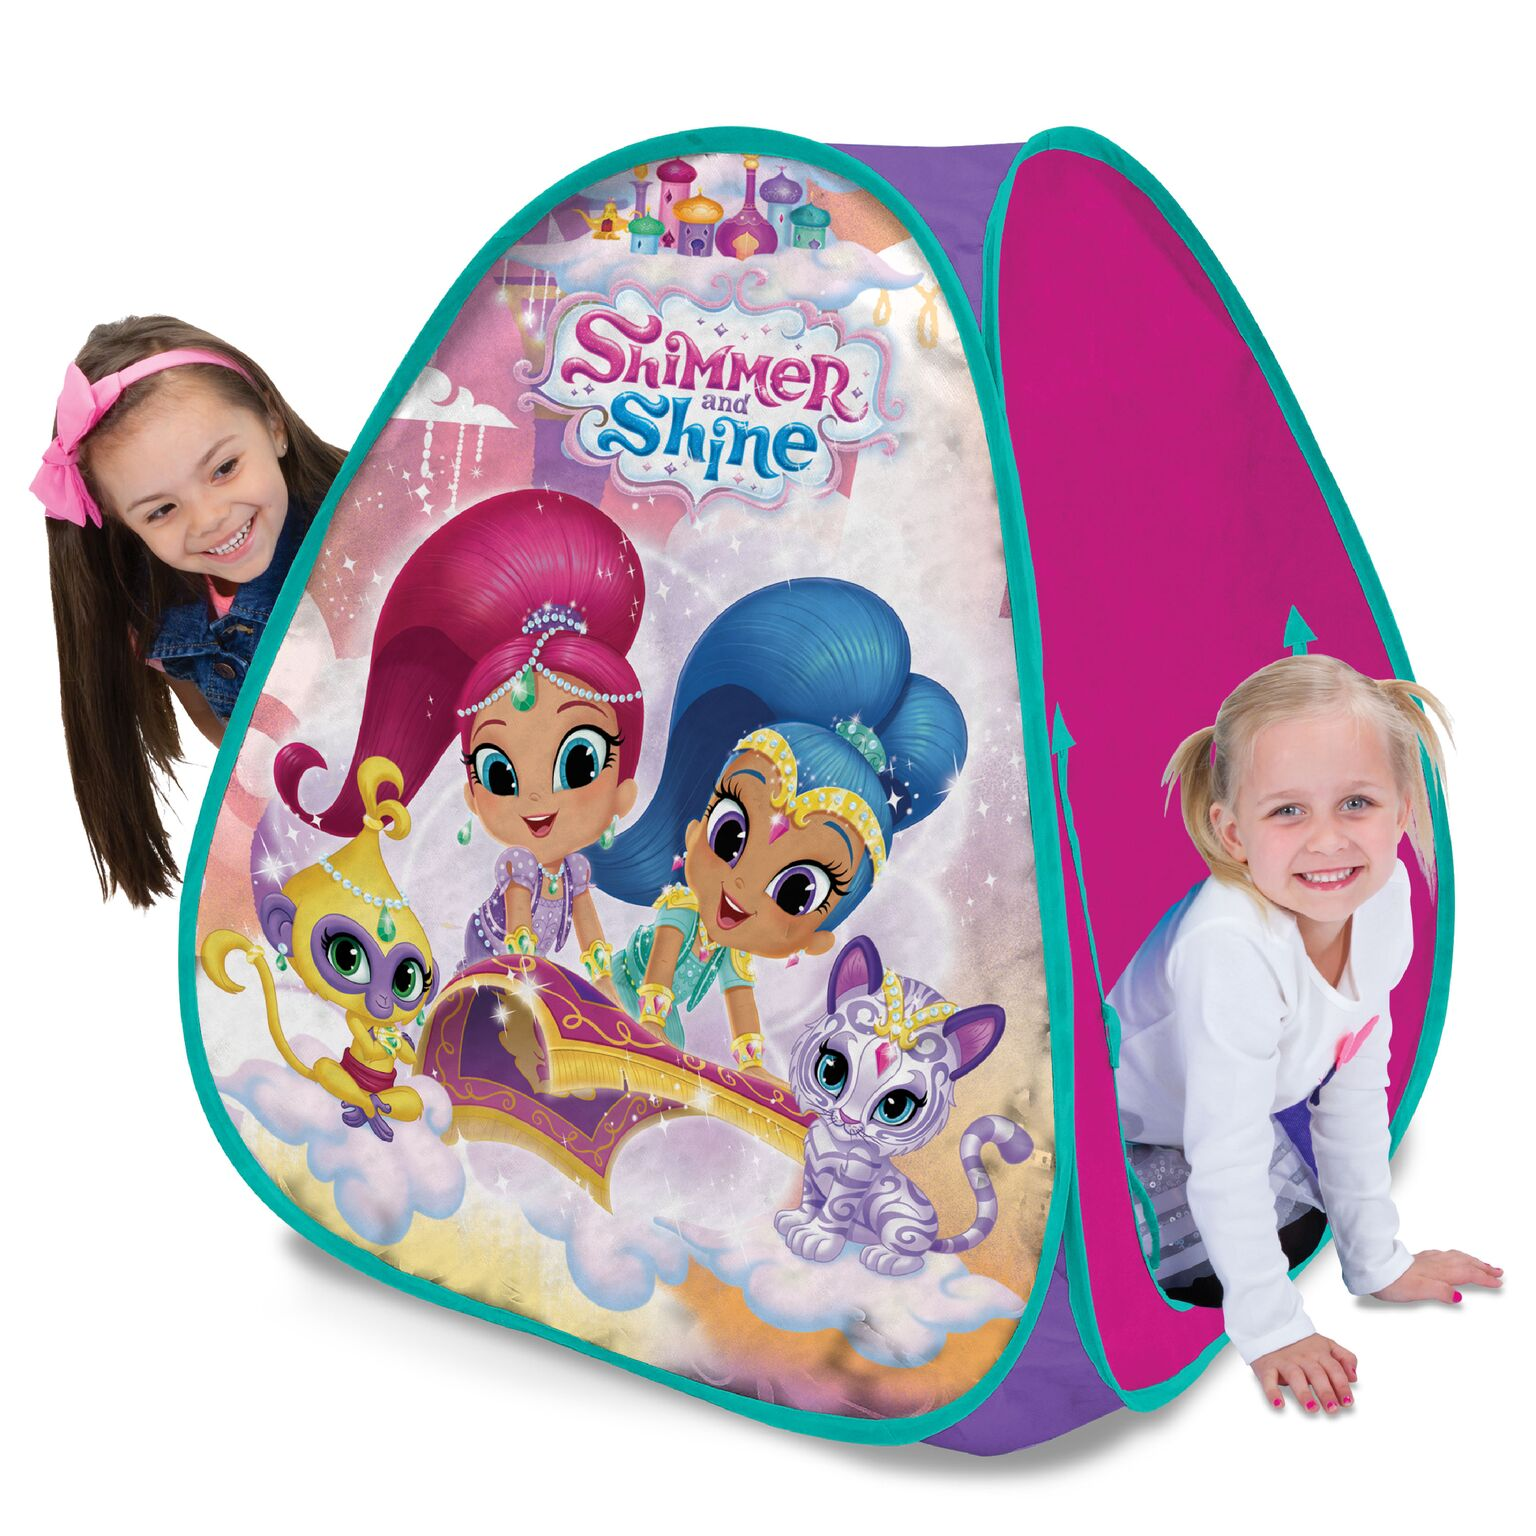 Playhut Shimmer and Shine Classic Hideaway Play Tent